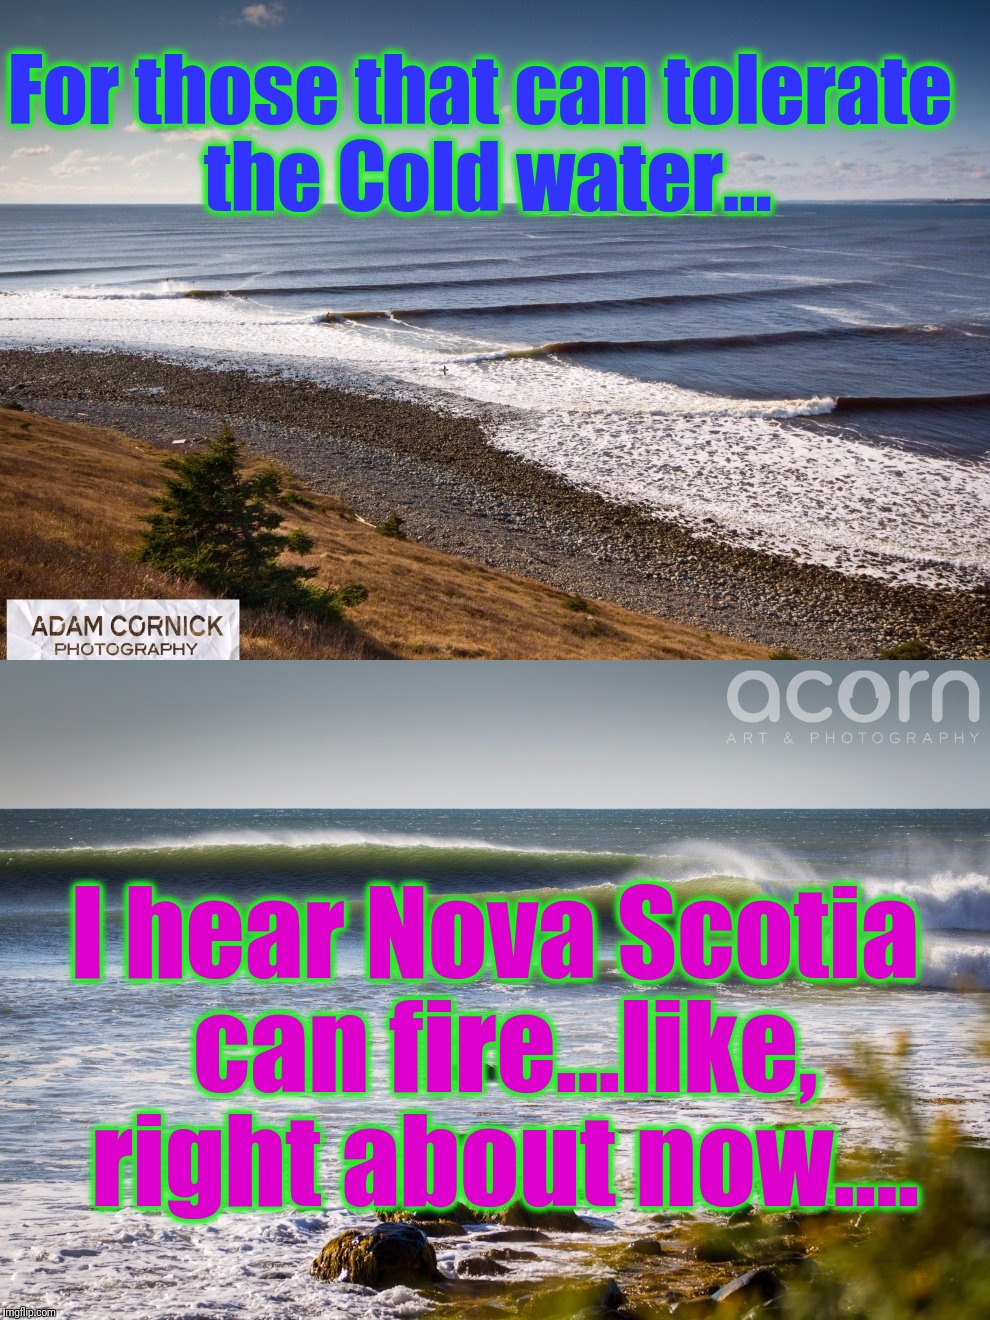 For those that can tolerate the Cold water... I hear Nova Scotia can fire...like, right about now.... | made w/ Imgflip meme maker